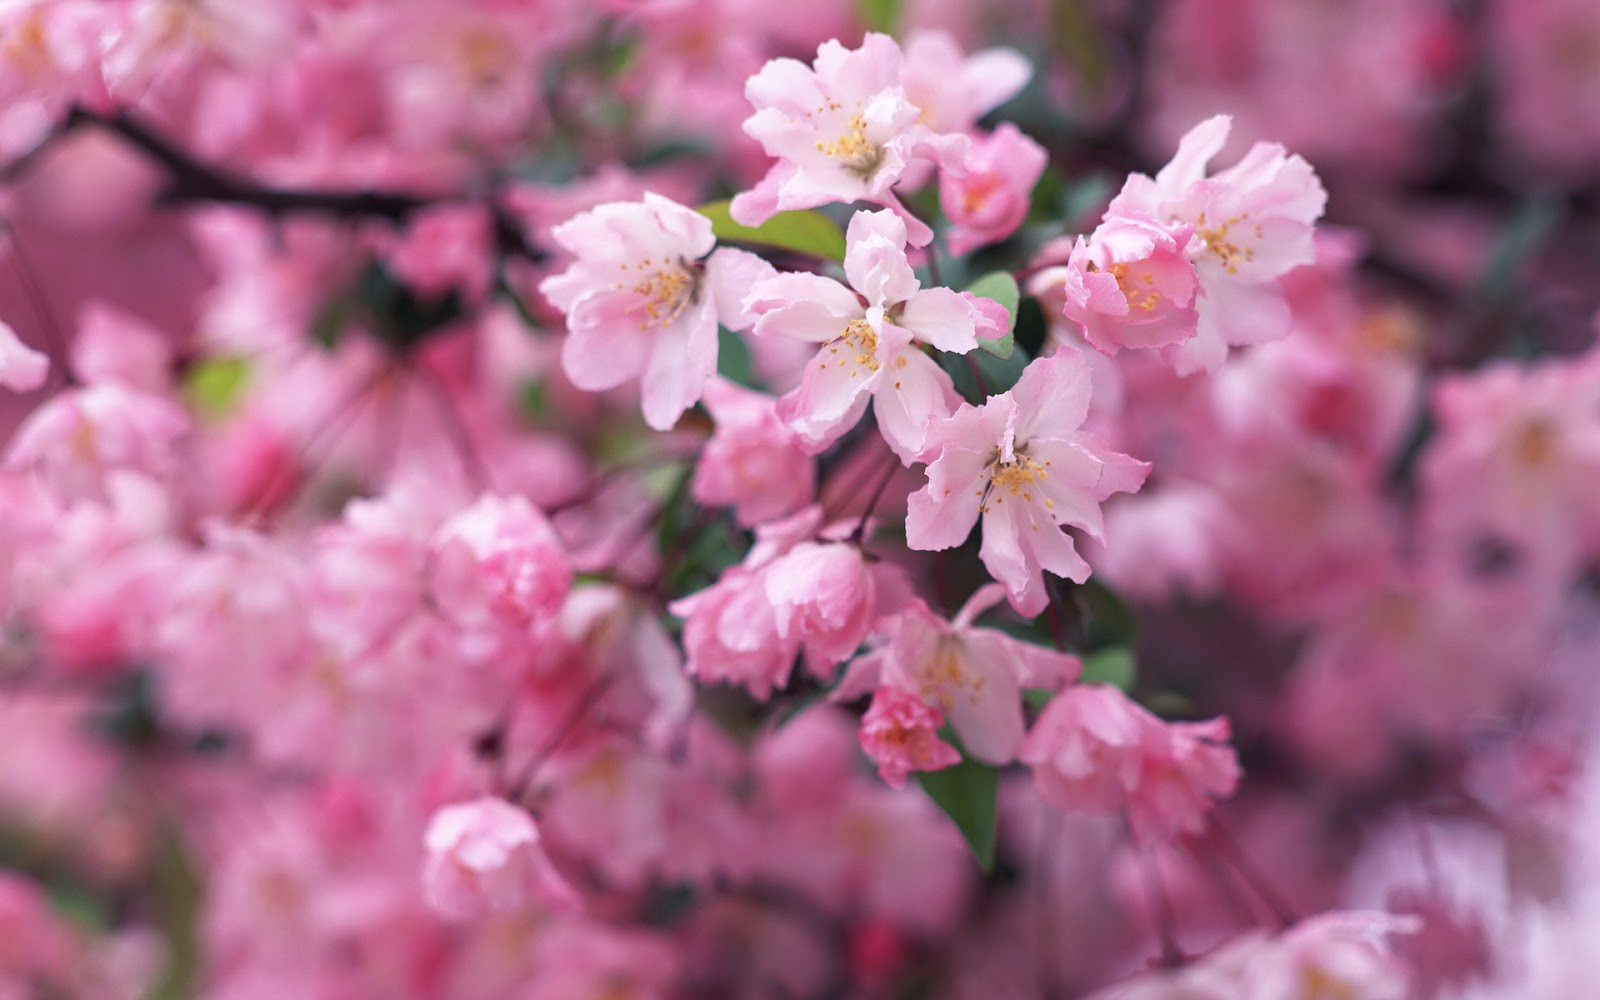 Wallpapers: Cherry blossom